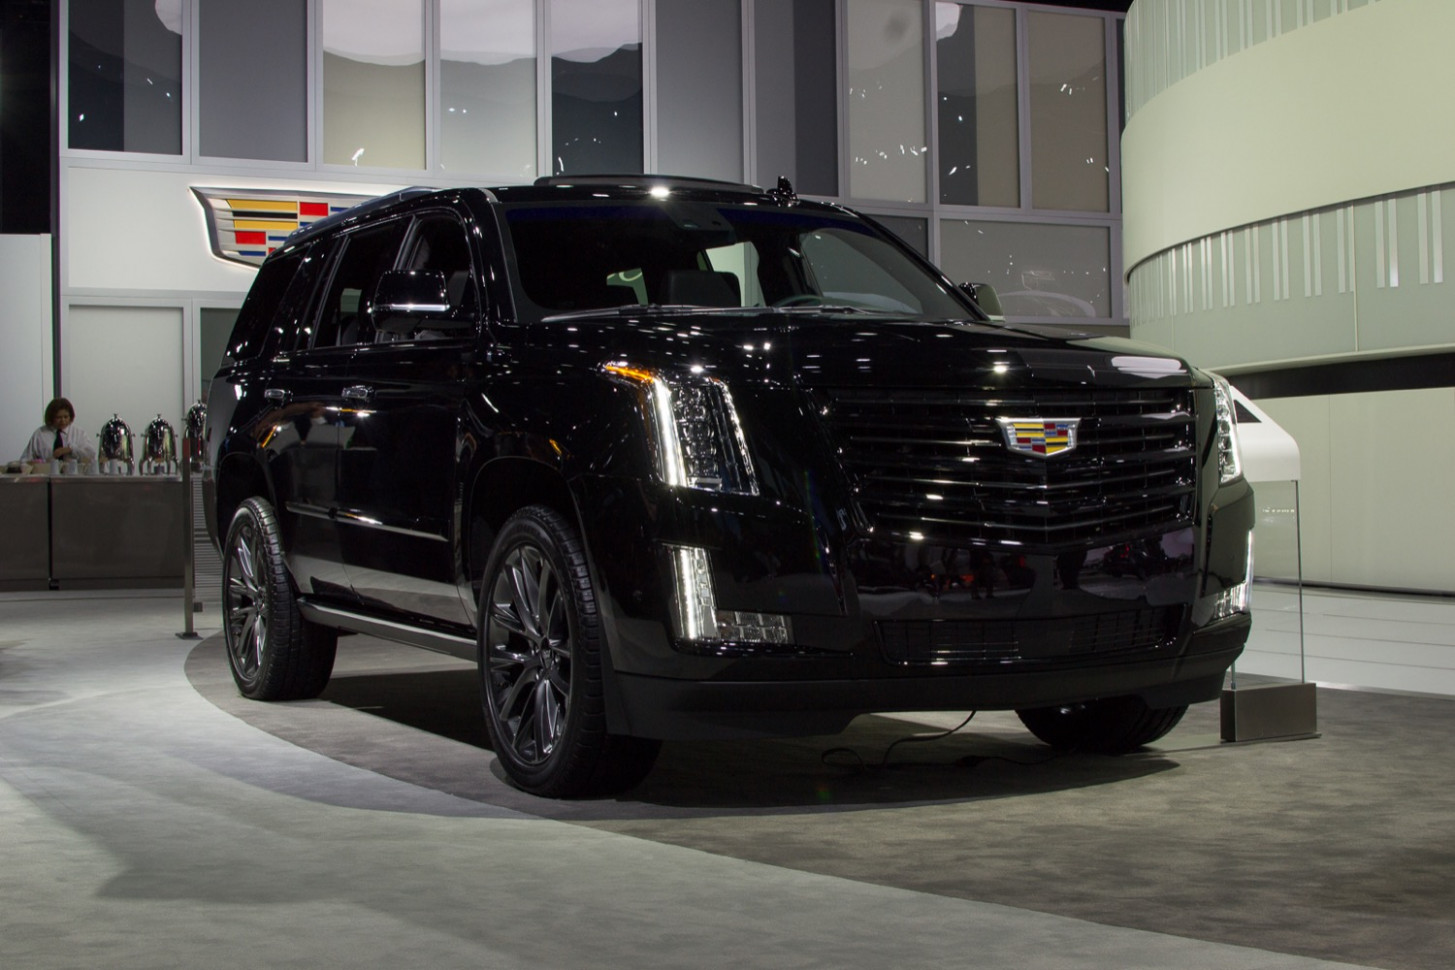 7 Cadillac Escalade Changes, Updates, New Features | GM Authority